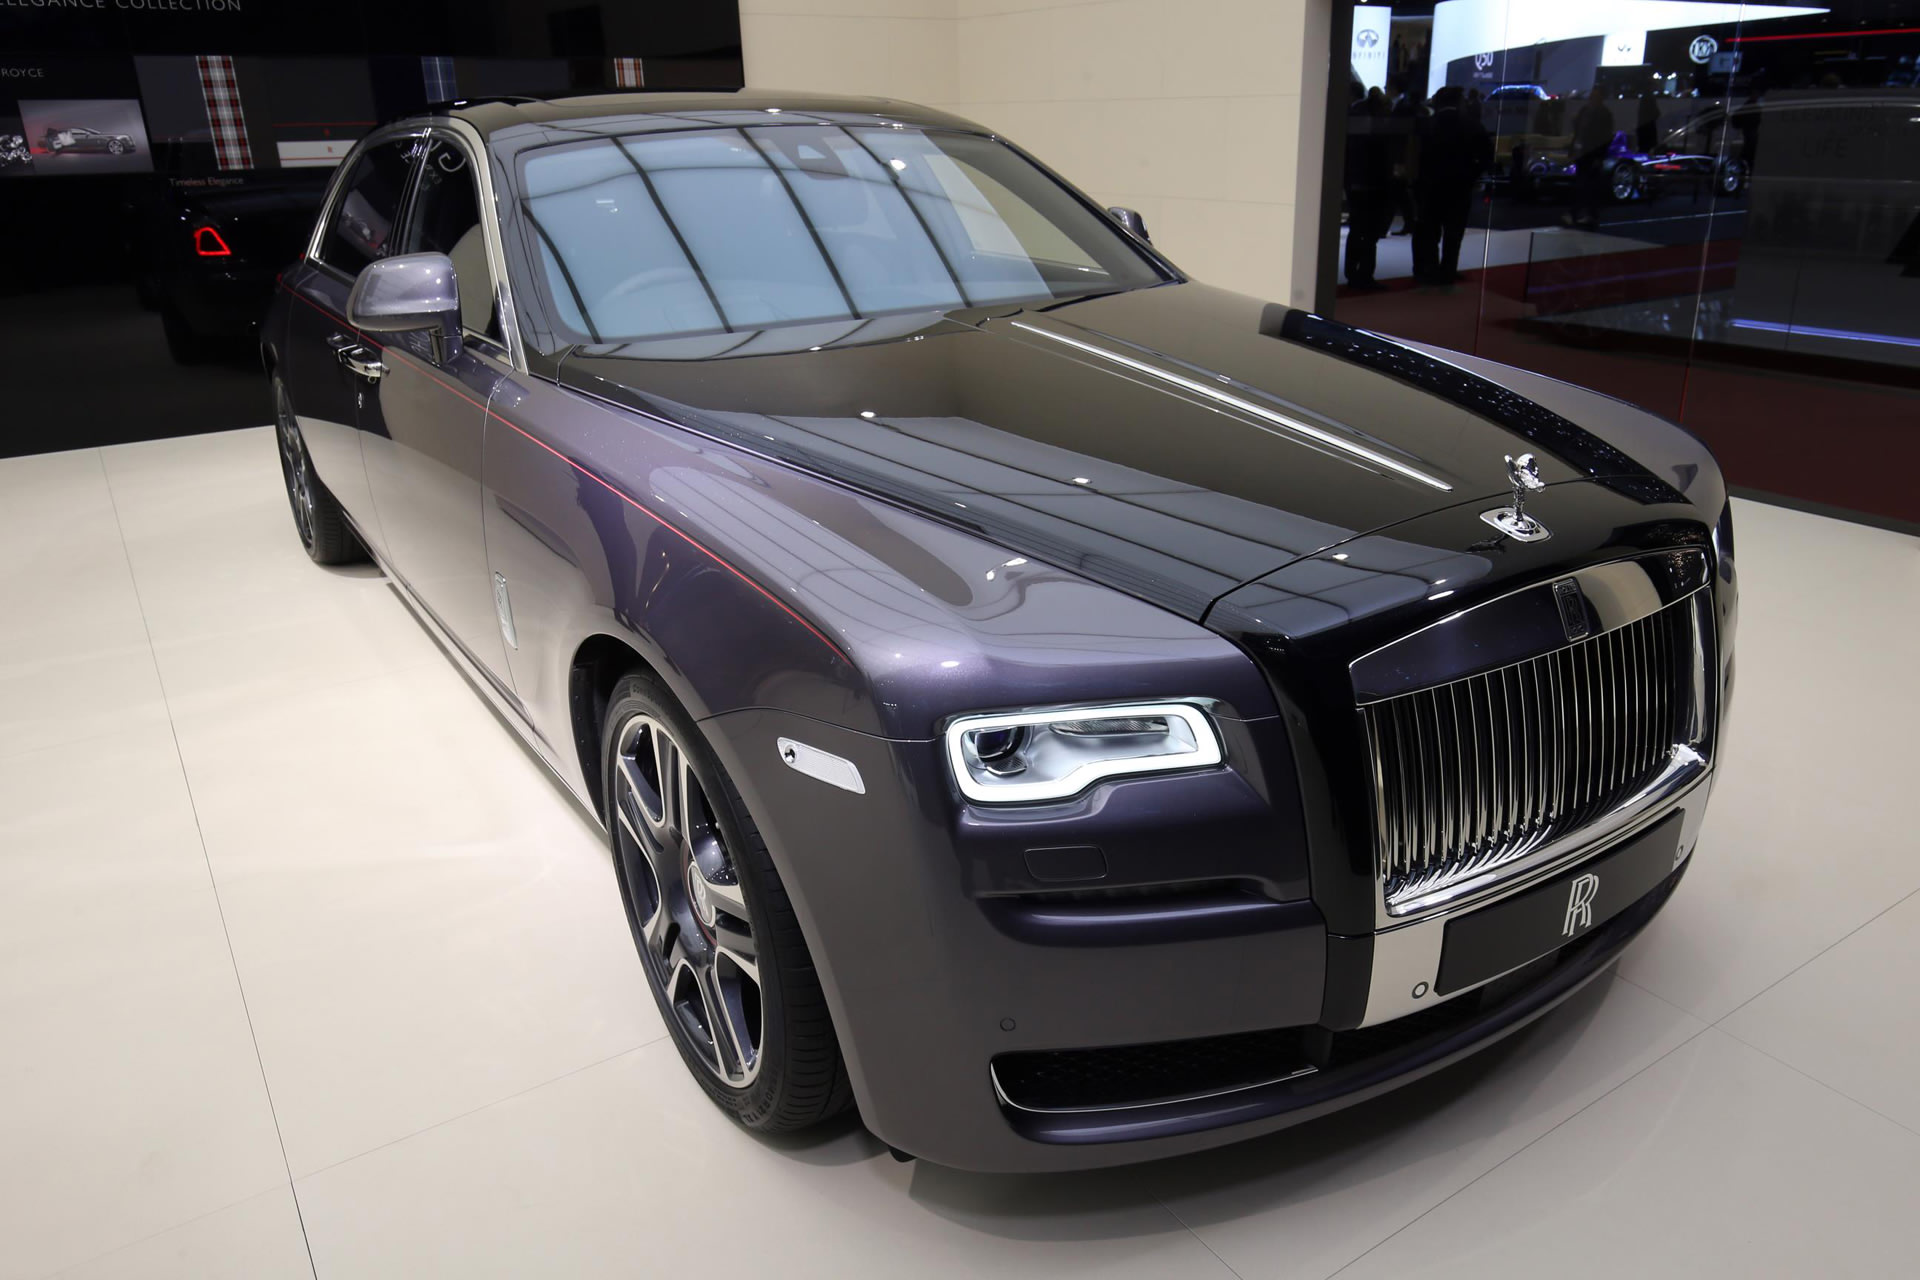 Say Hello to the Rolls Royce Ghost that has 1,000 crushed ...